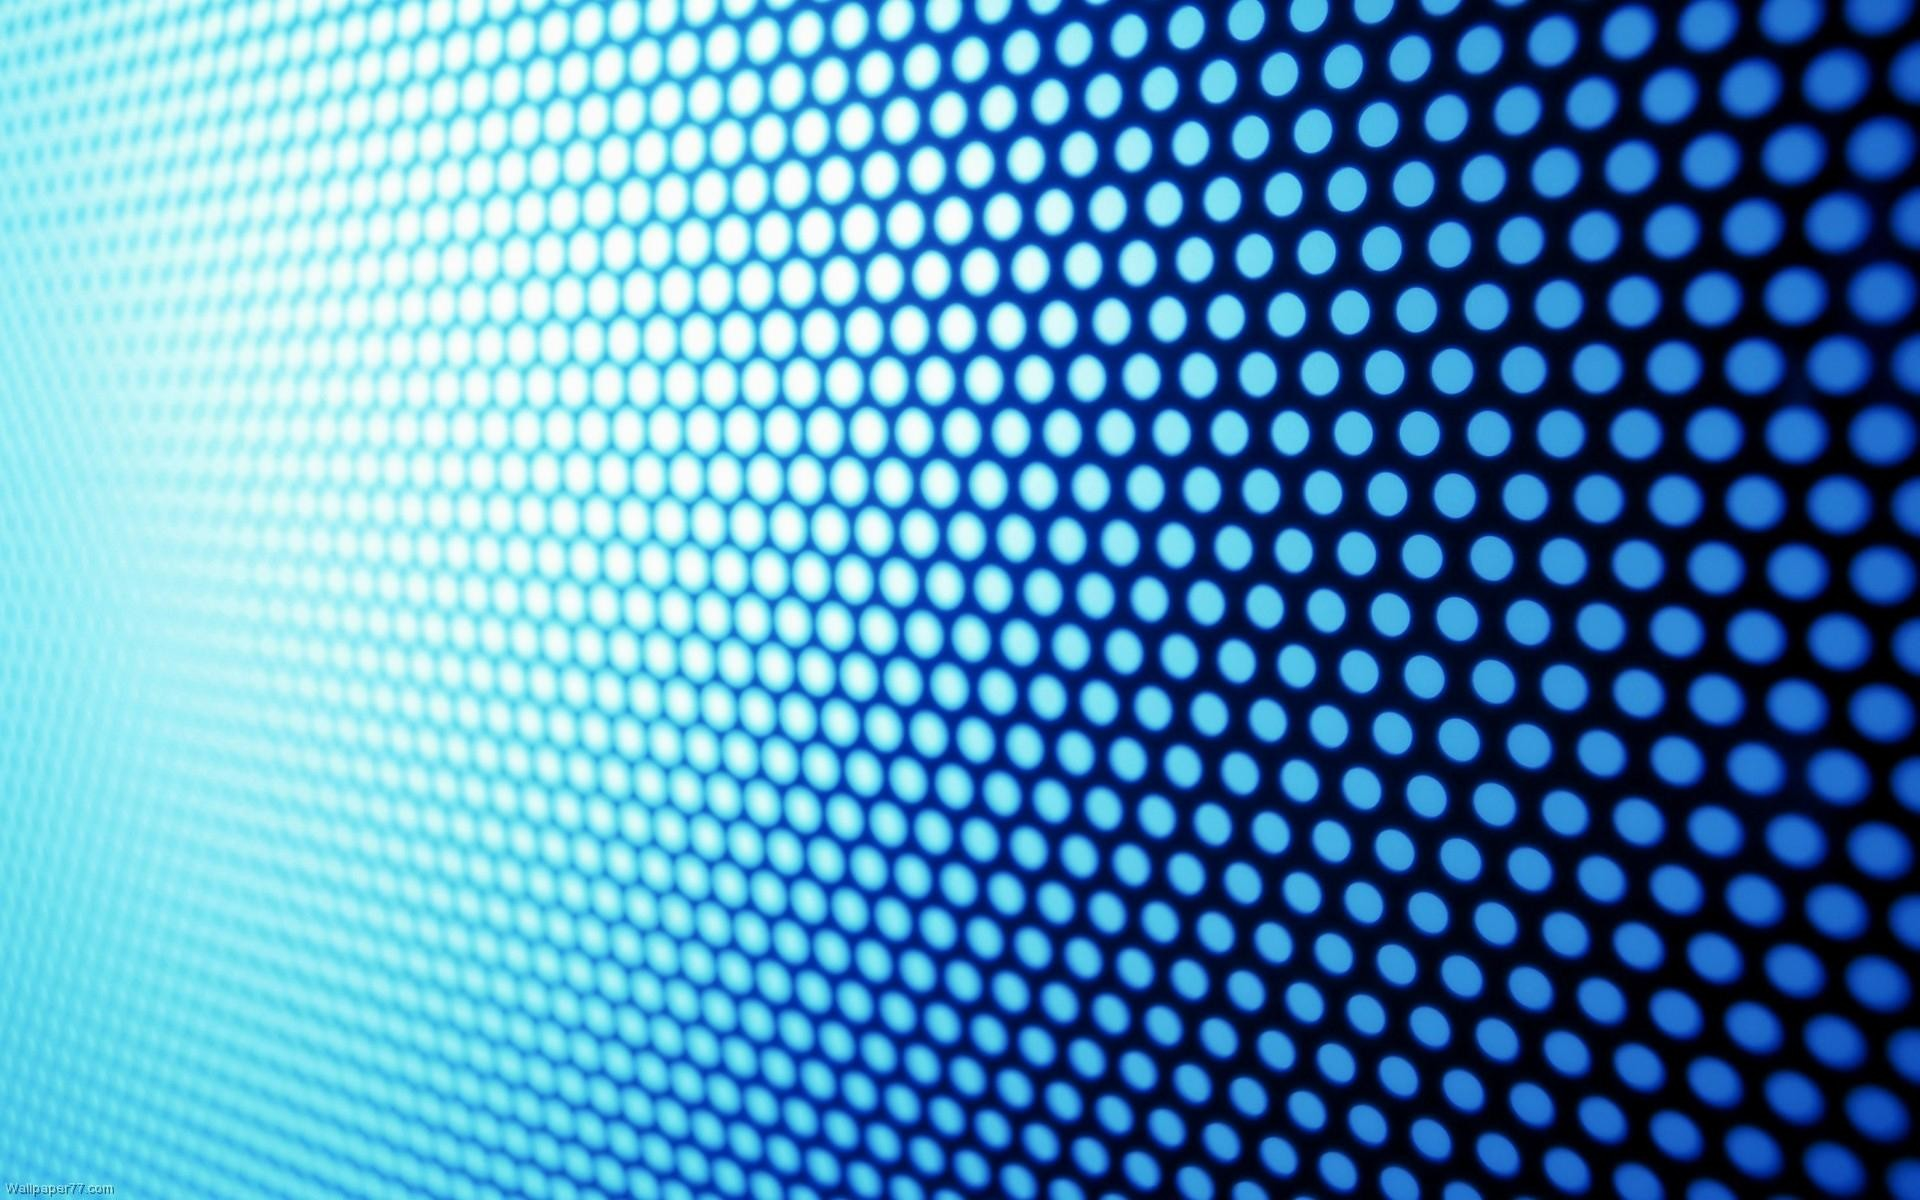 Pattern-blue-dots-background-patterns-wallpapers-HD-carbon-